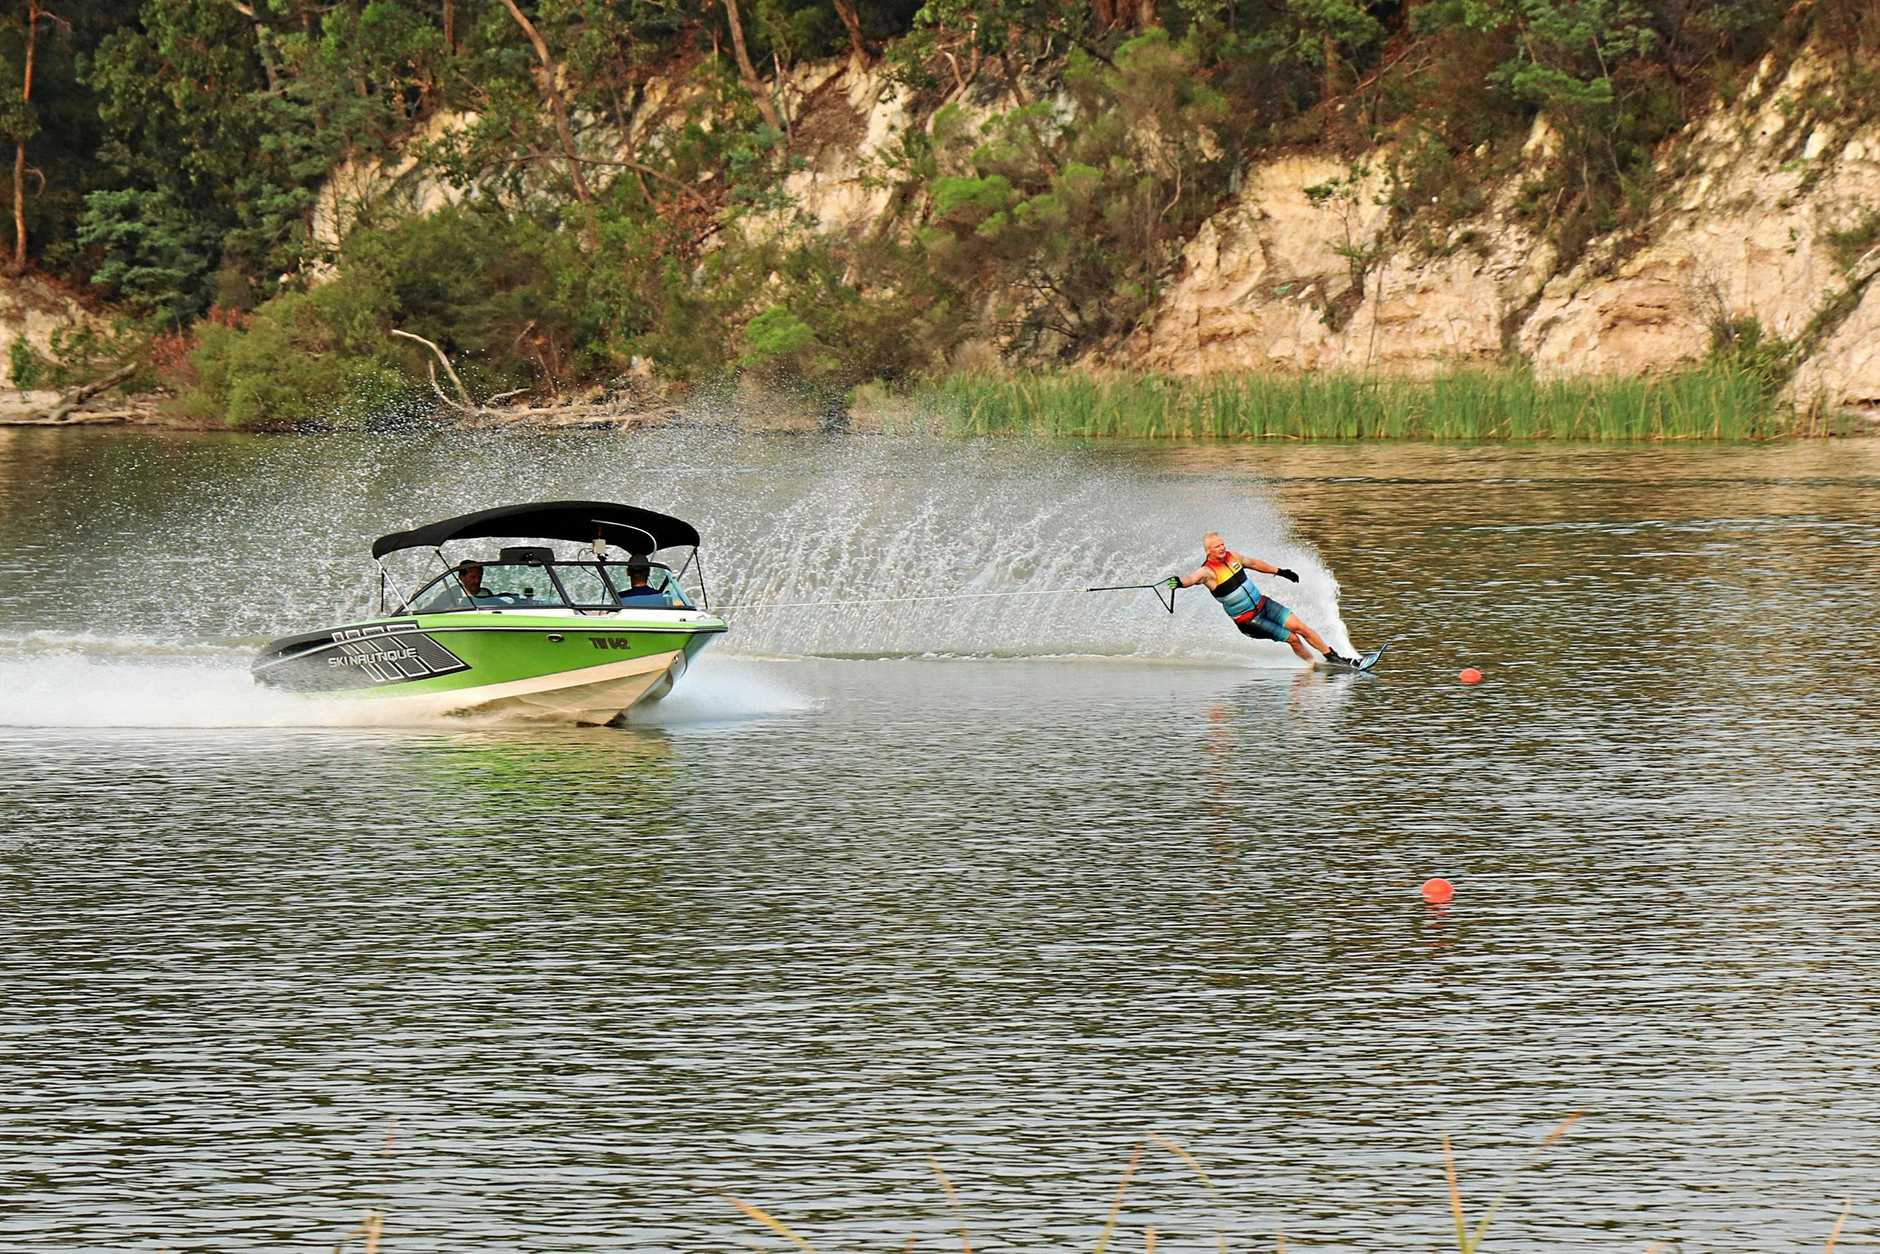 ON THE WATER: Toowoomba's Brad Williams brushes up on his skills at Perseverance Dam.